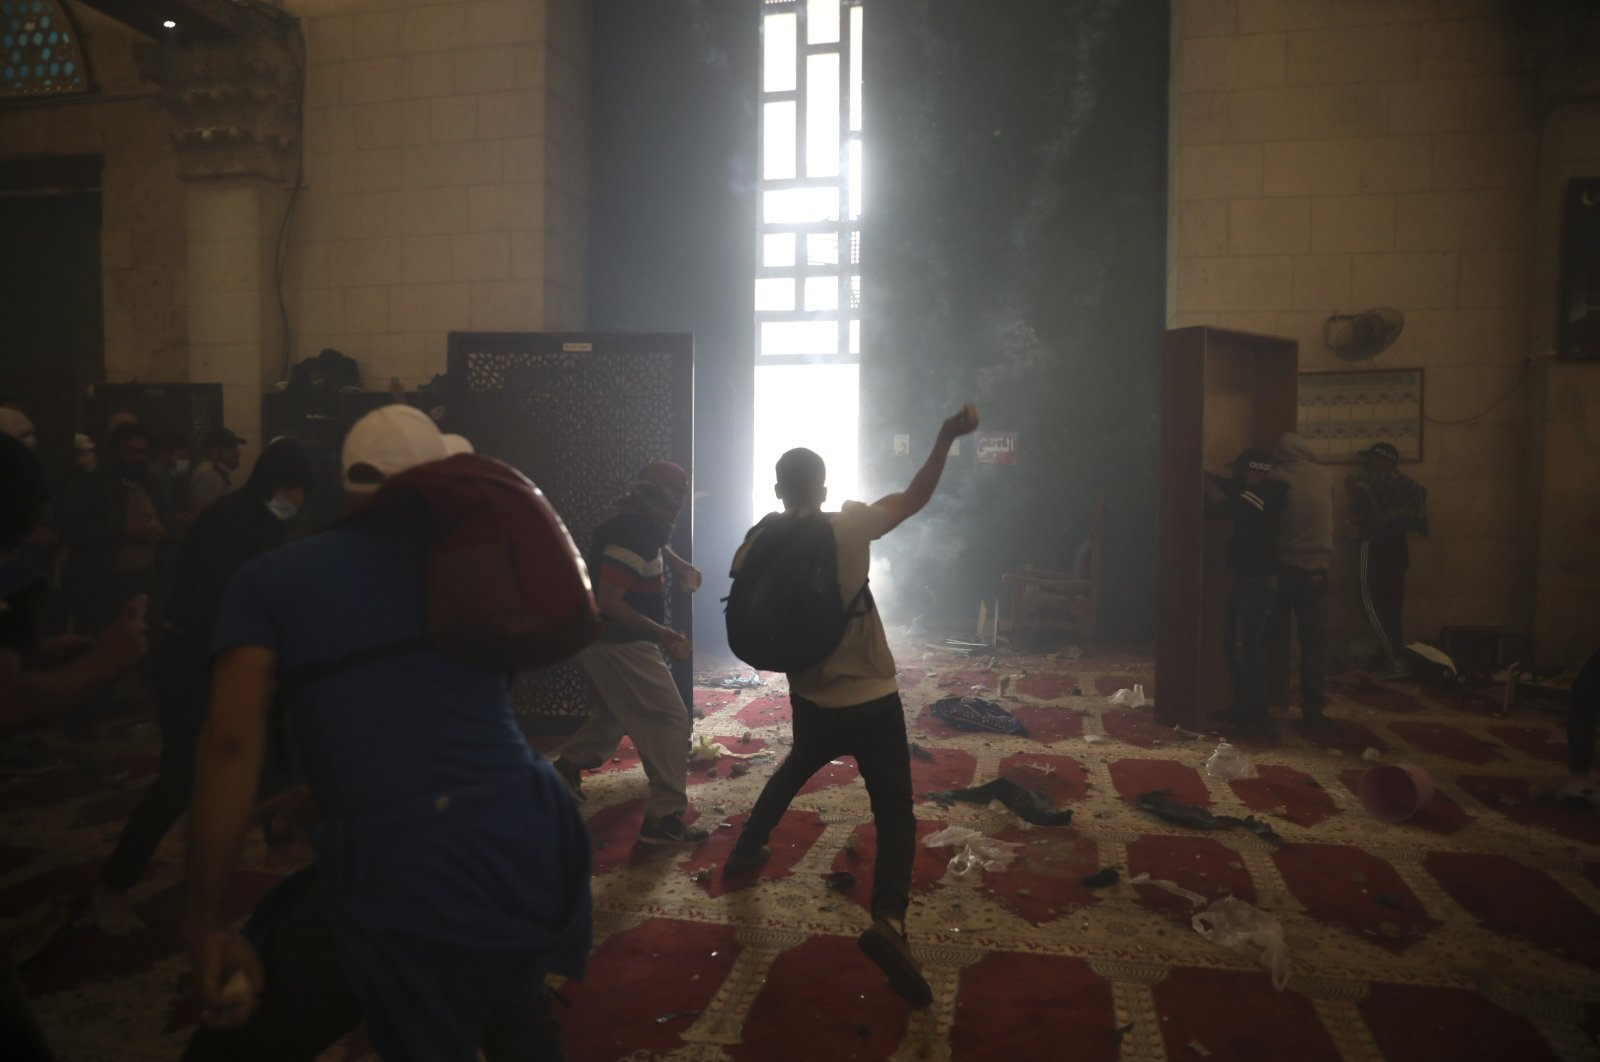 Israeli forces target Palestinians at the Al-Aqsa Mosque compound in Jerusalem's Old City, Palestine, May 10, 2021. (AP Photo)